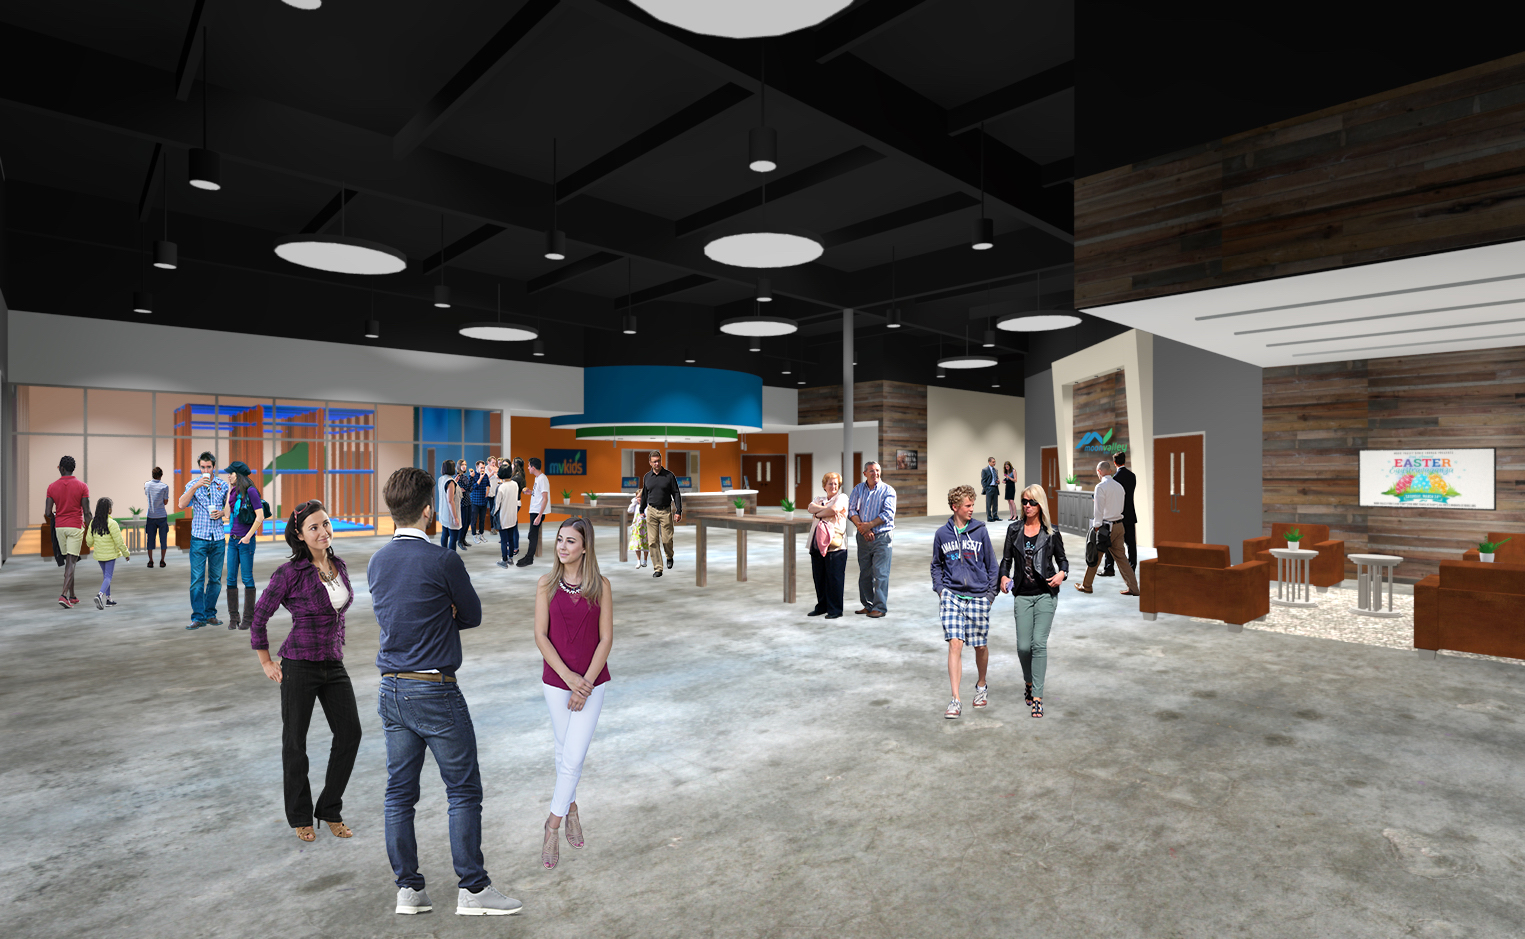 Lobby space rendering of Moon Valley Bible Church